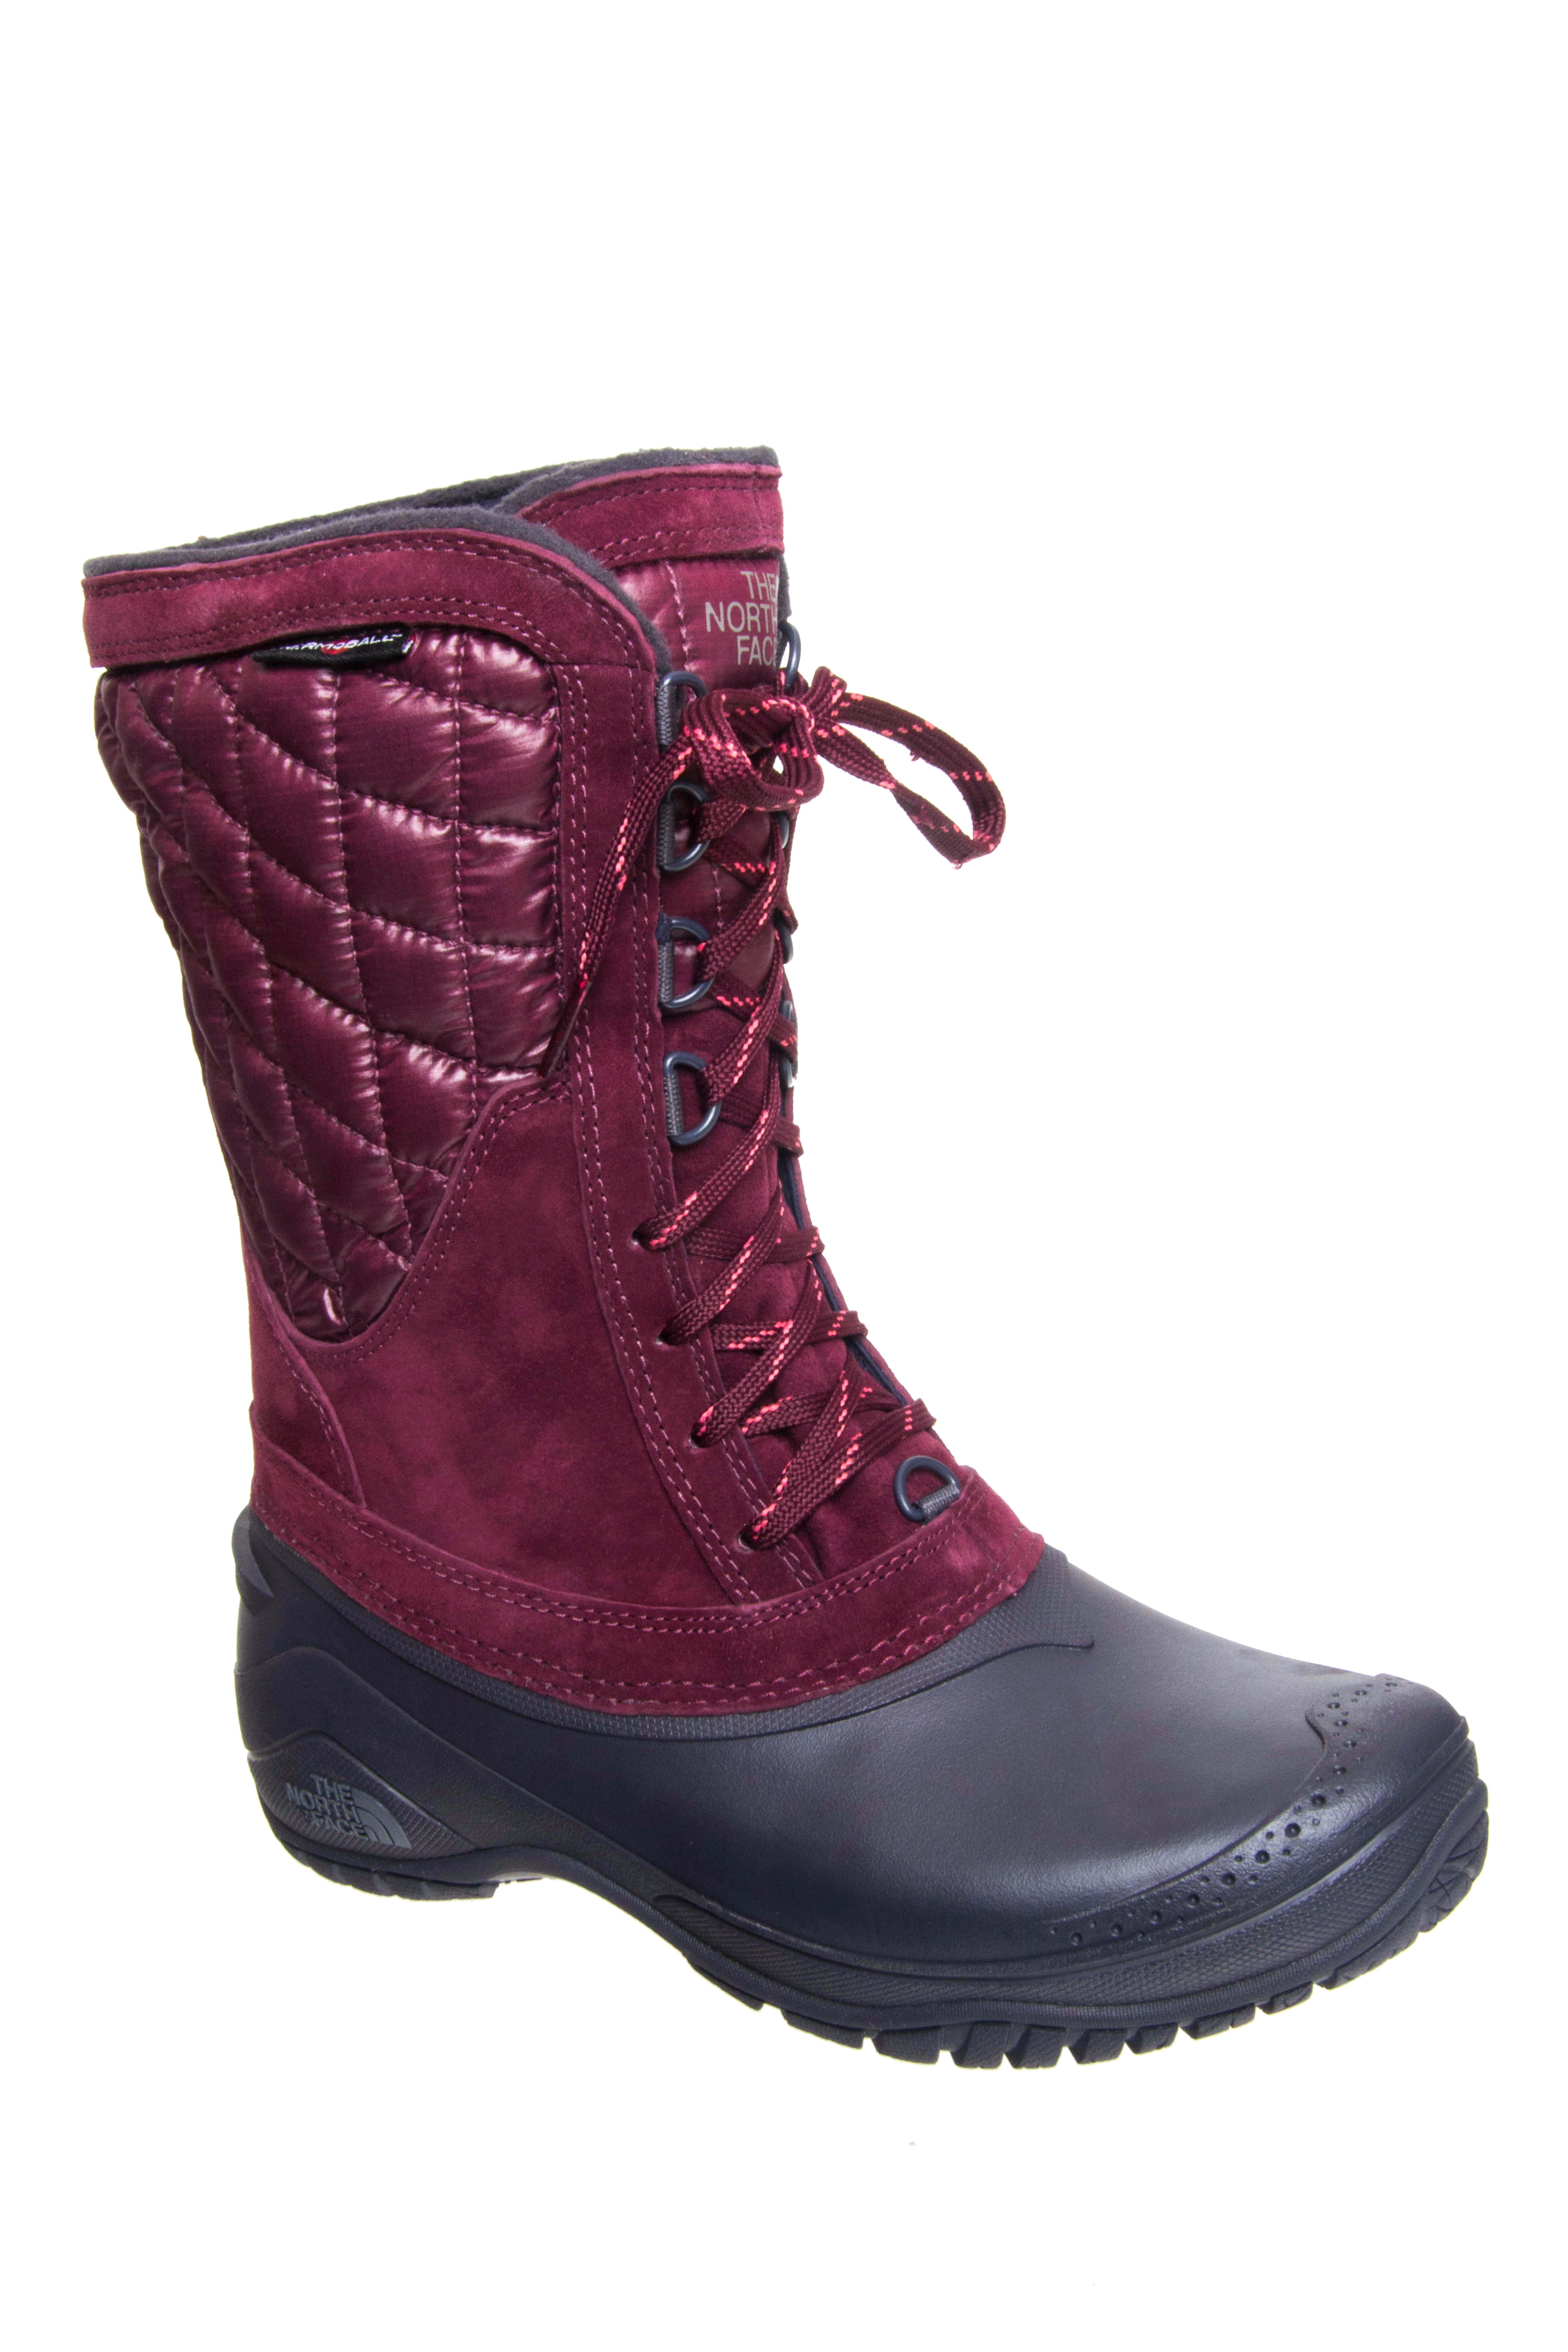 The North Face Thermoball Utility Mid Calf Boots - Deep Garnet